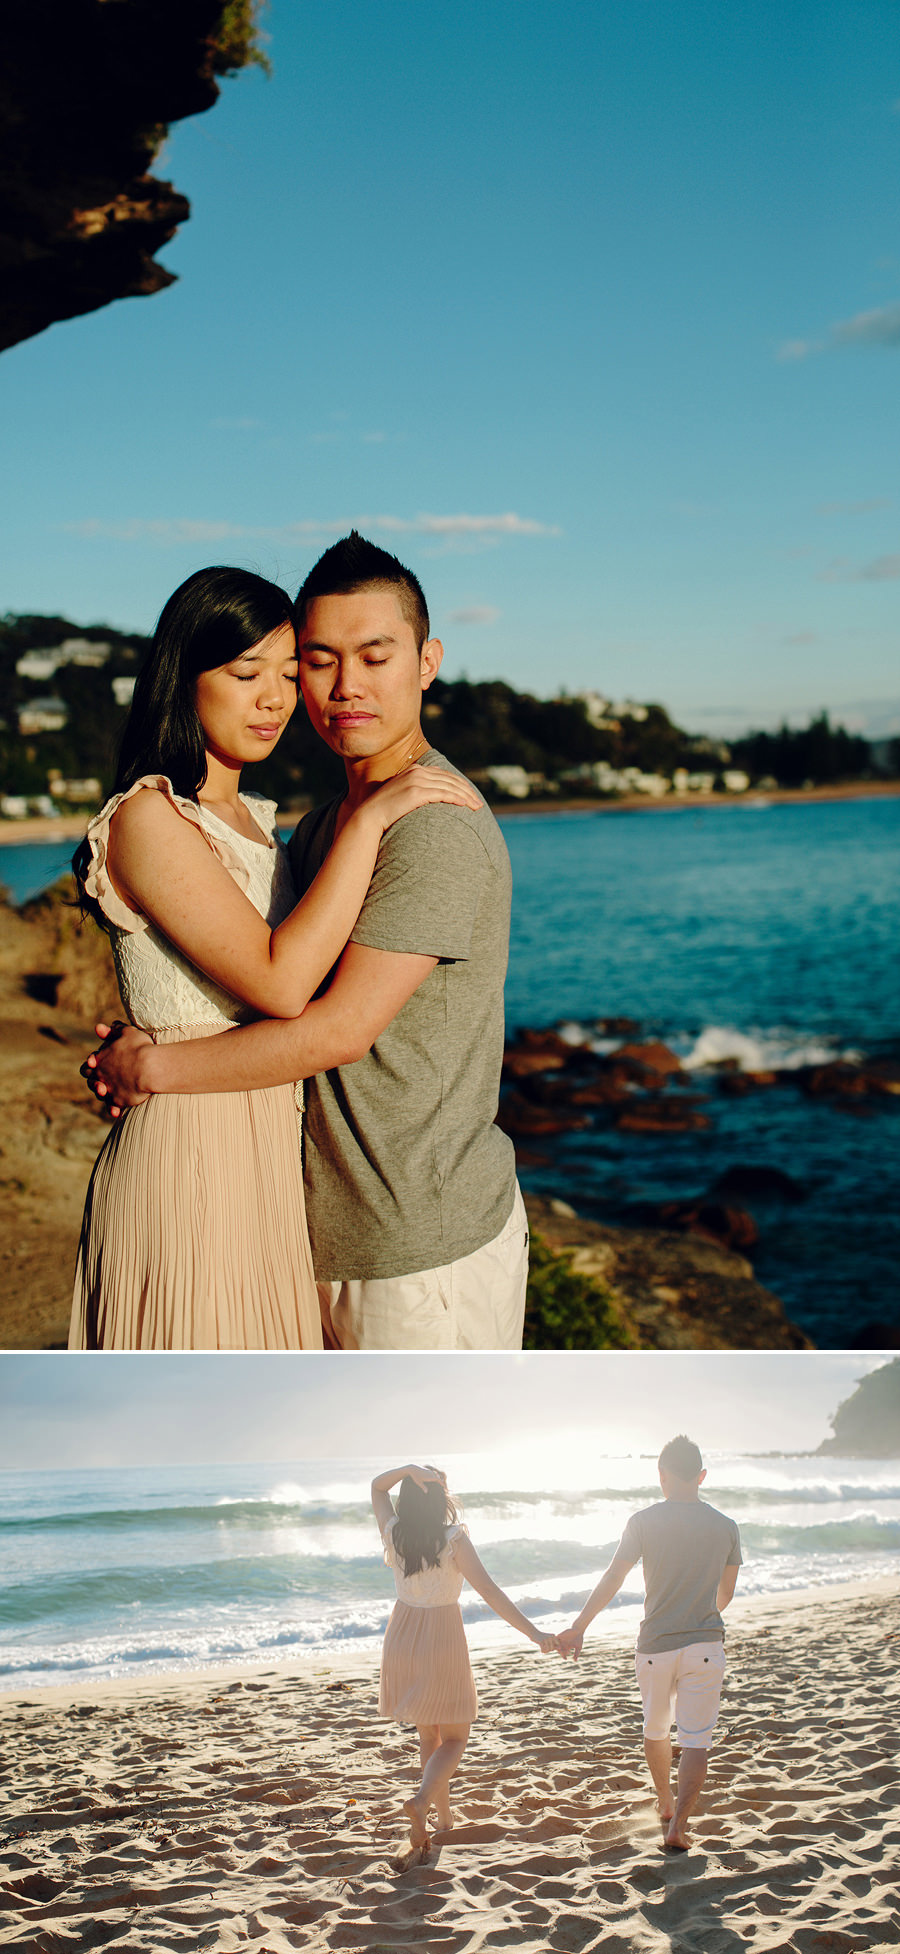 Northern Beaches Engagement Photographers: Shirley & Wilson